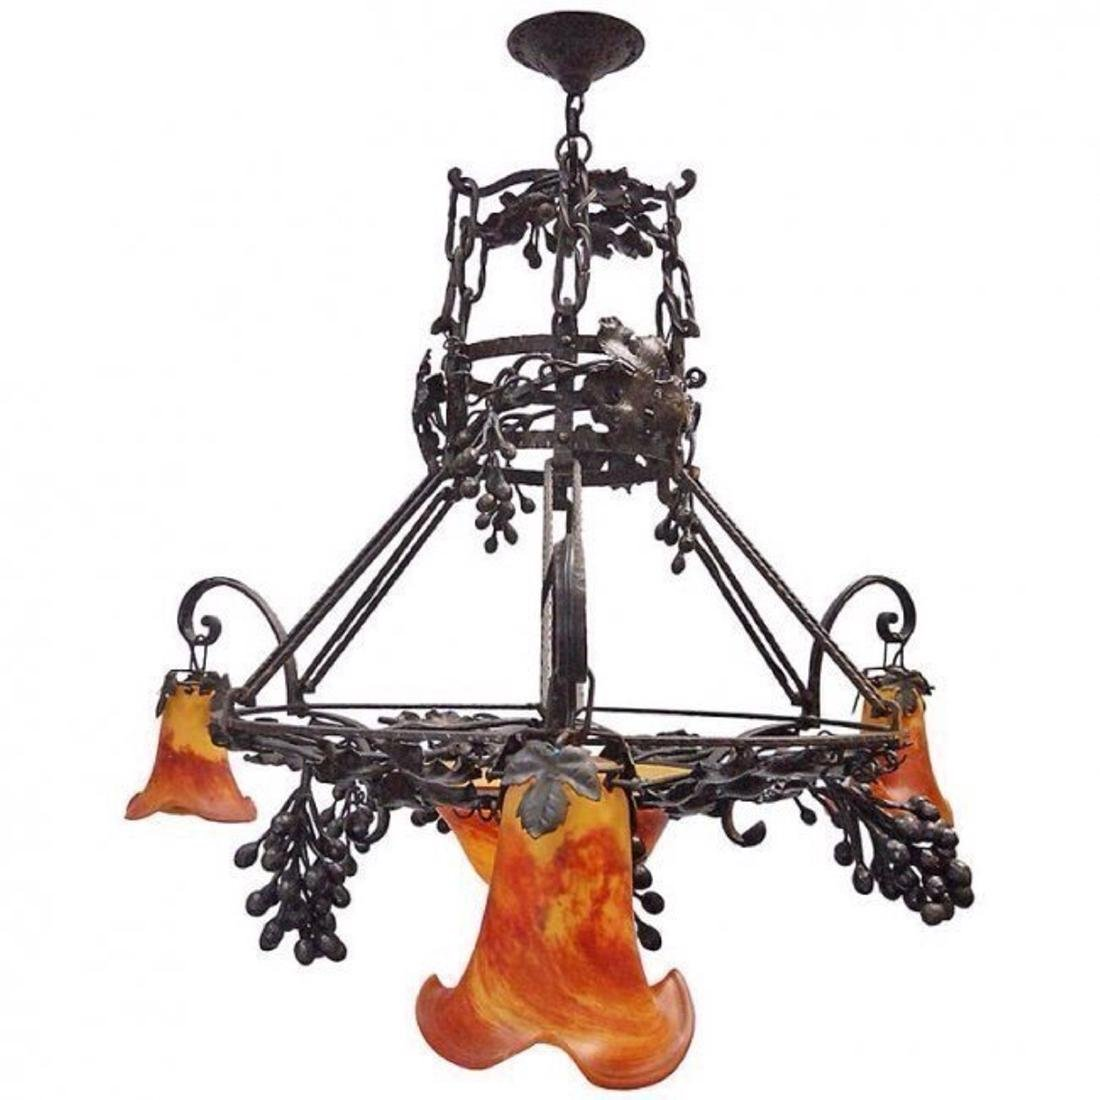 ART NOUVEAU FRENCH ART GLASS & WROUGHT IRON CHANDELIER